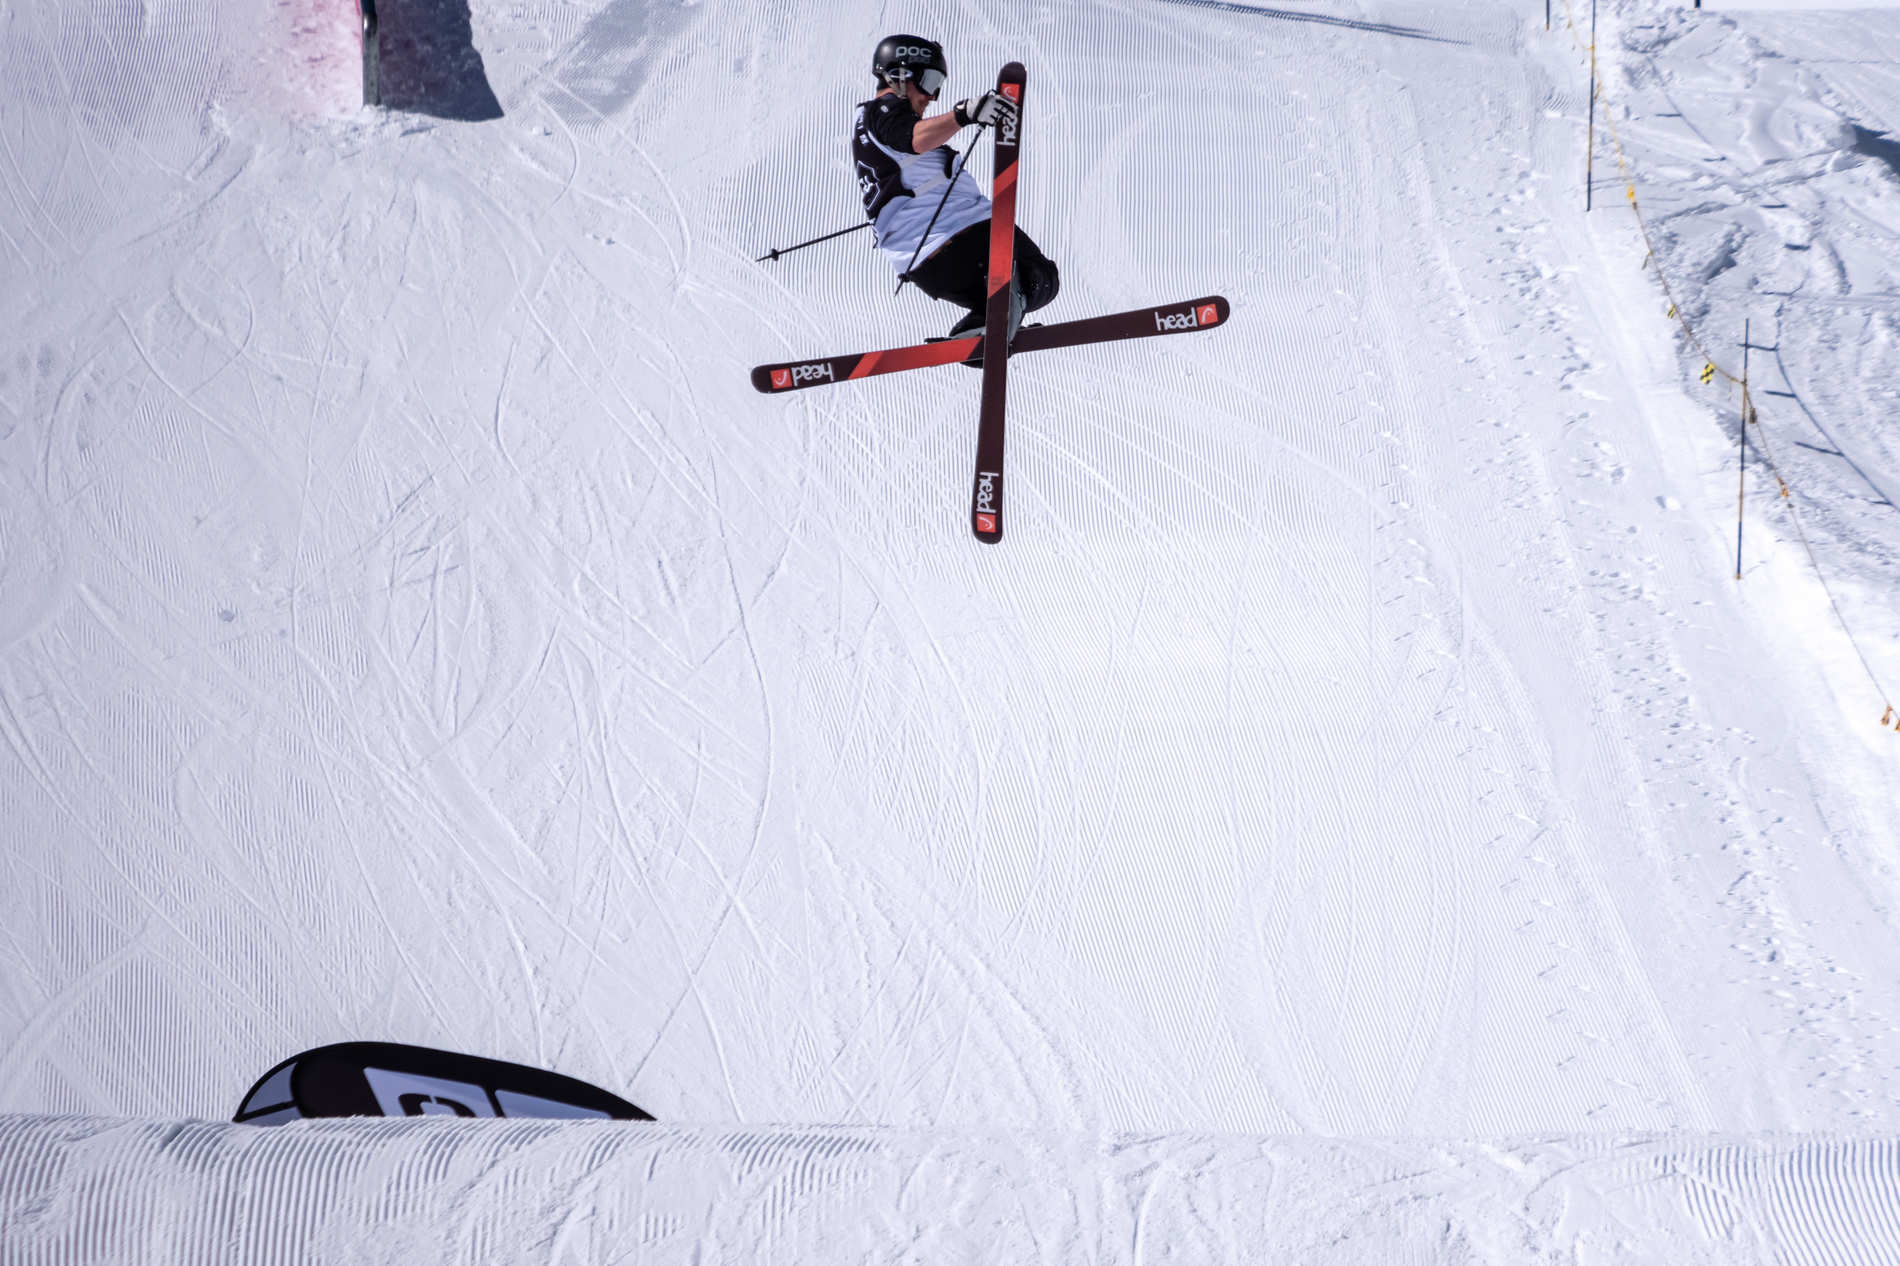 schilthorn 23 03 2019 action fs unknown patrick luchs qparks 009